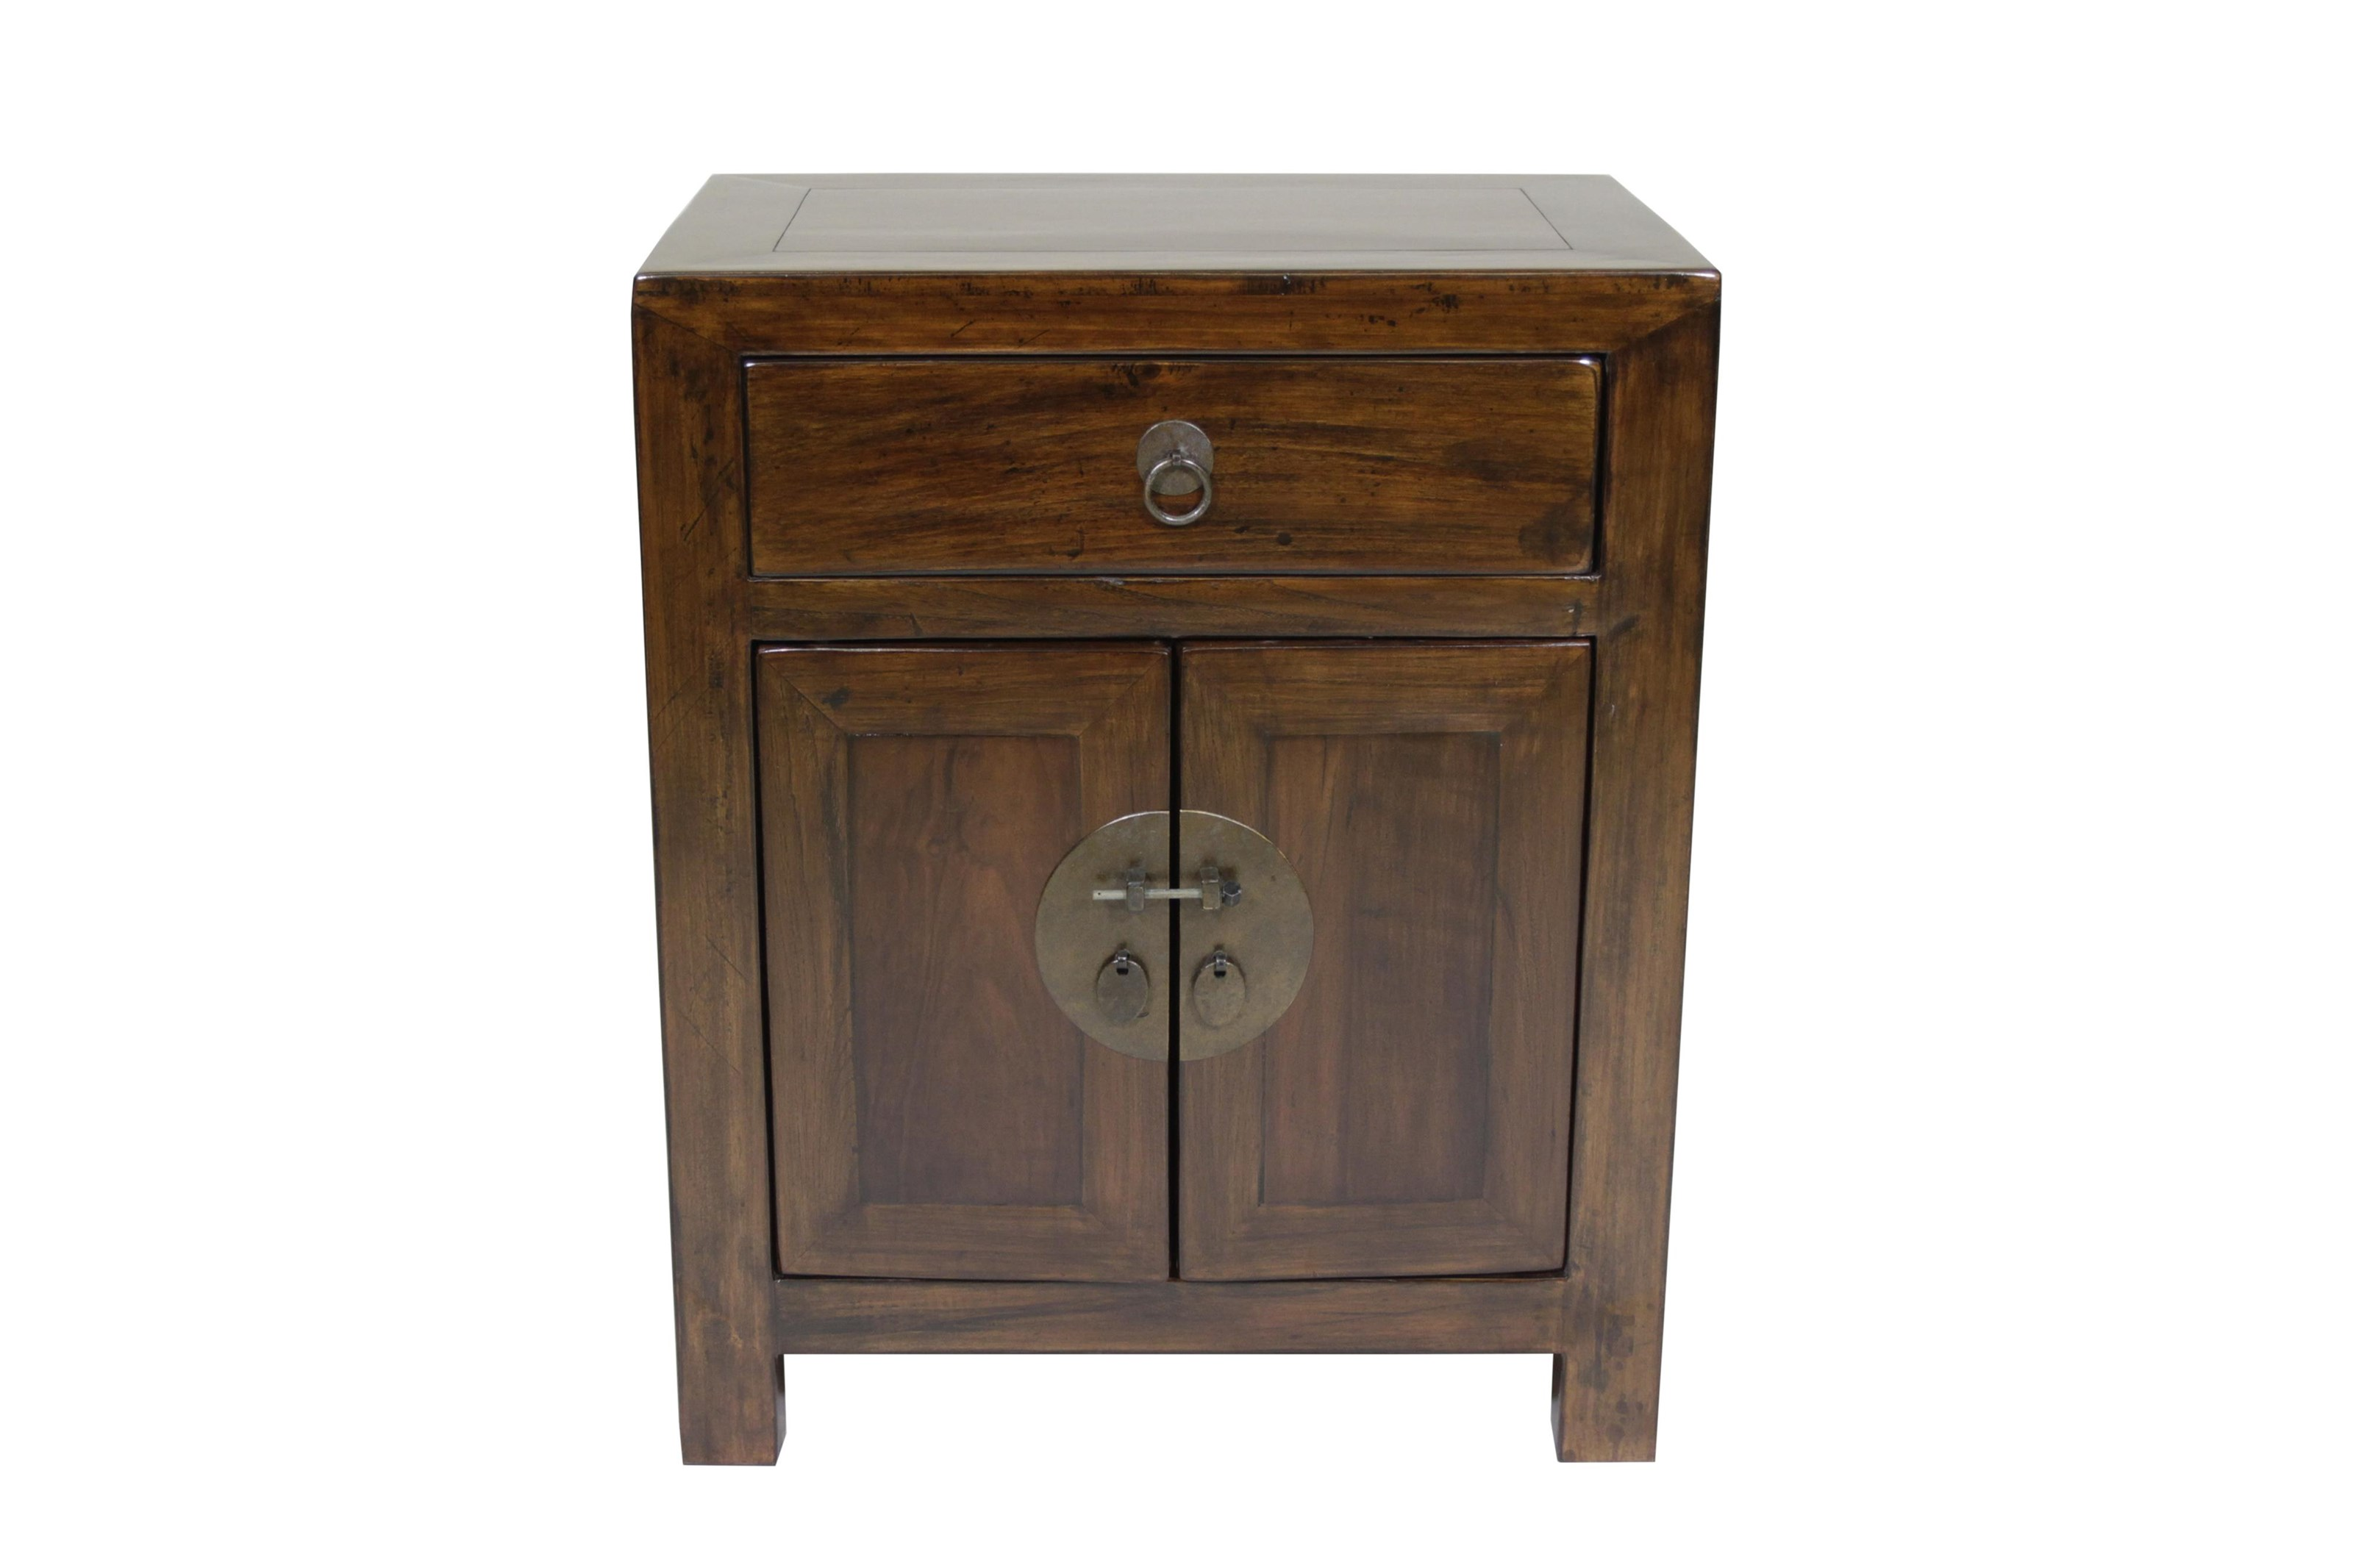 C.S. Wo & Sons Antiques   Bedside Cabinet - Item Number: 130AB